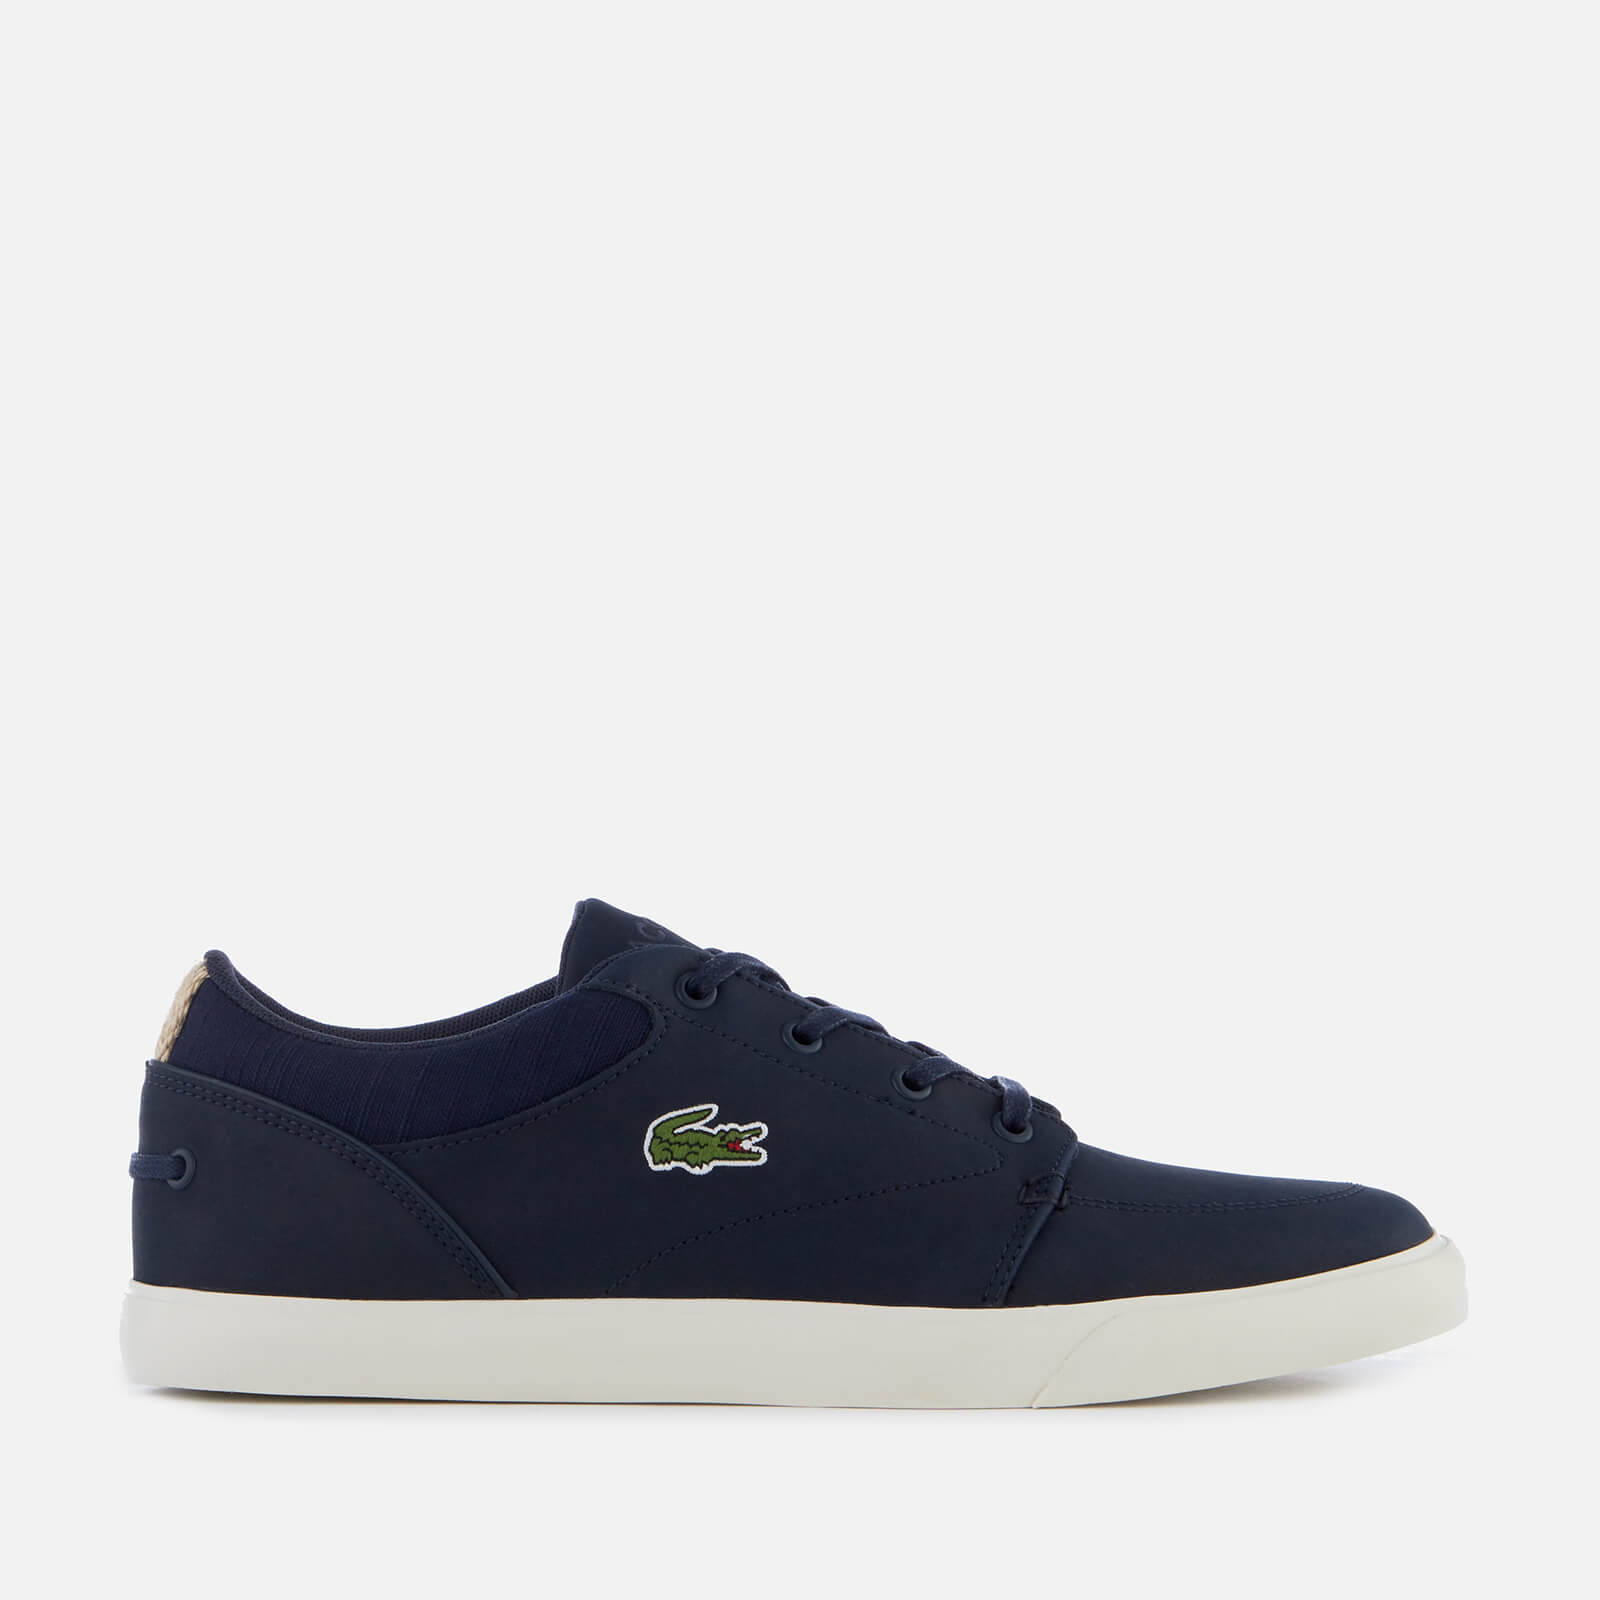 a1376c1665eb9 Lacoste Men's Bayliss 119 1 Leather Lace Up Trainers - Navy/Off White |  FREE UK Delivery | Allsole